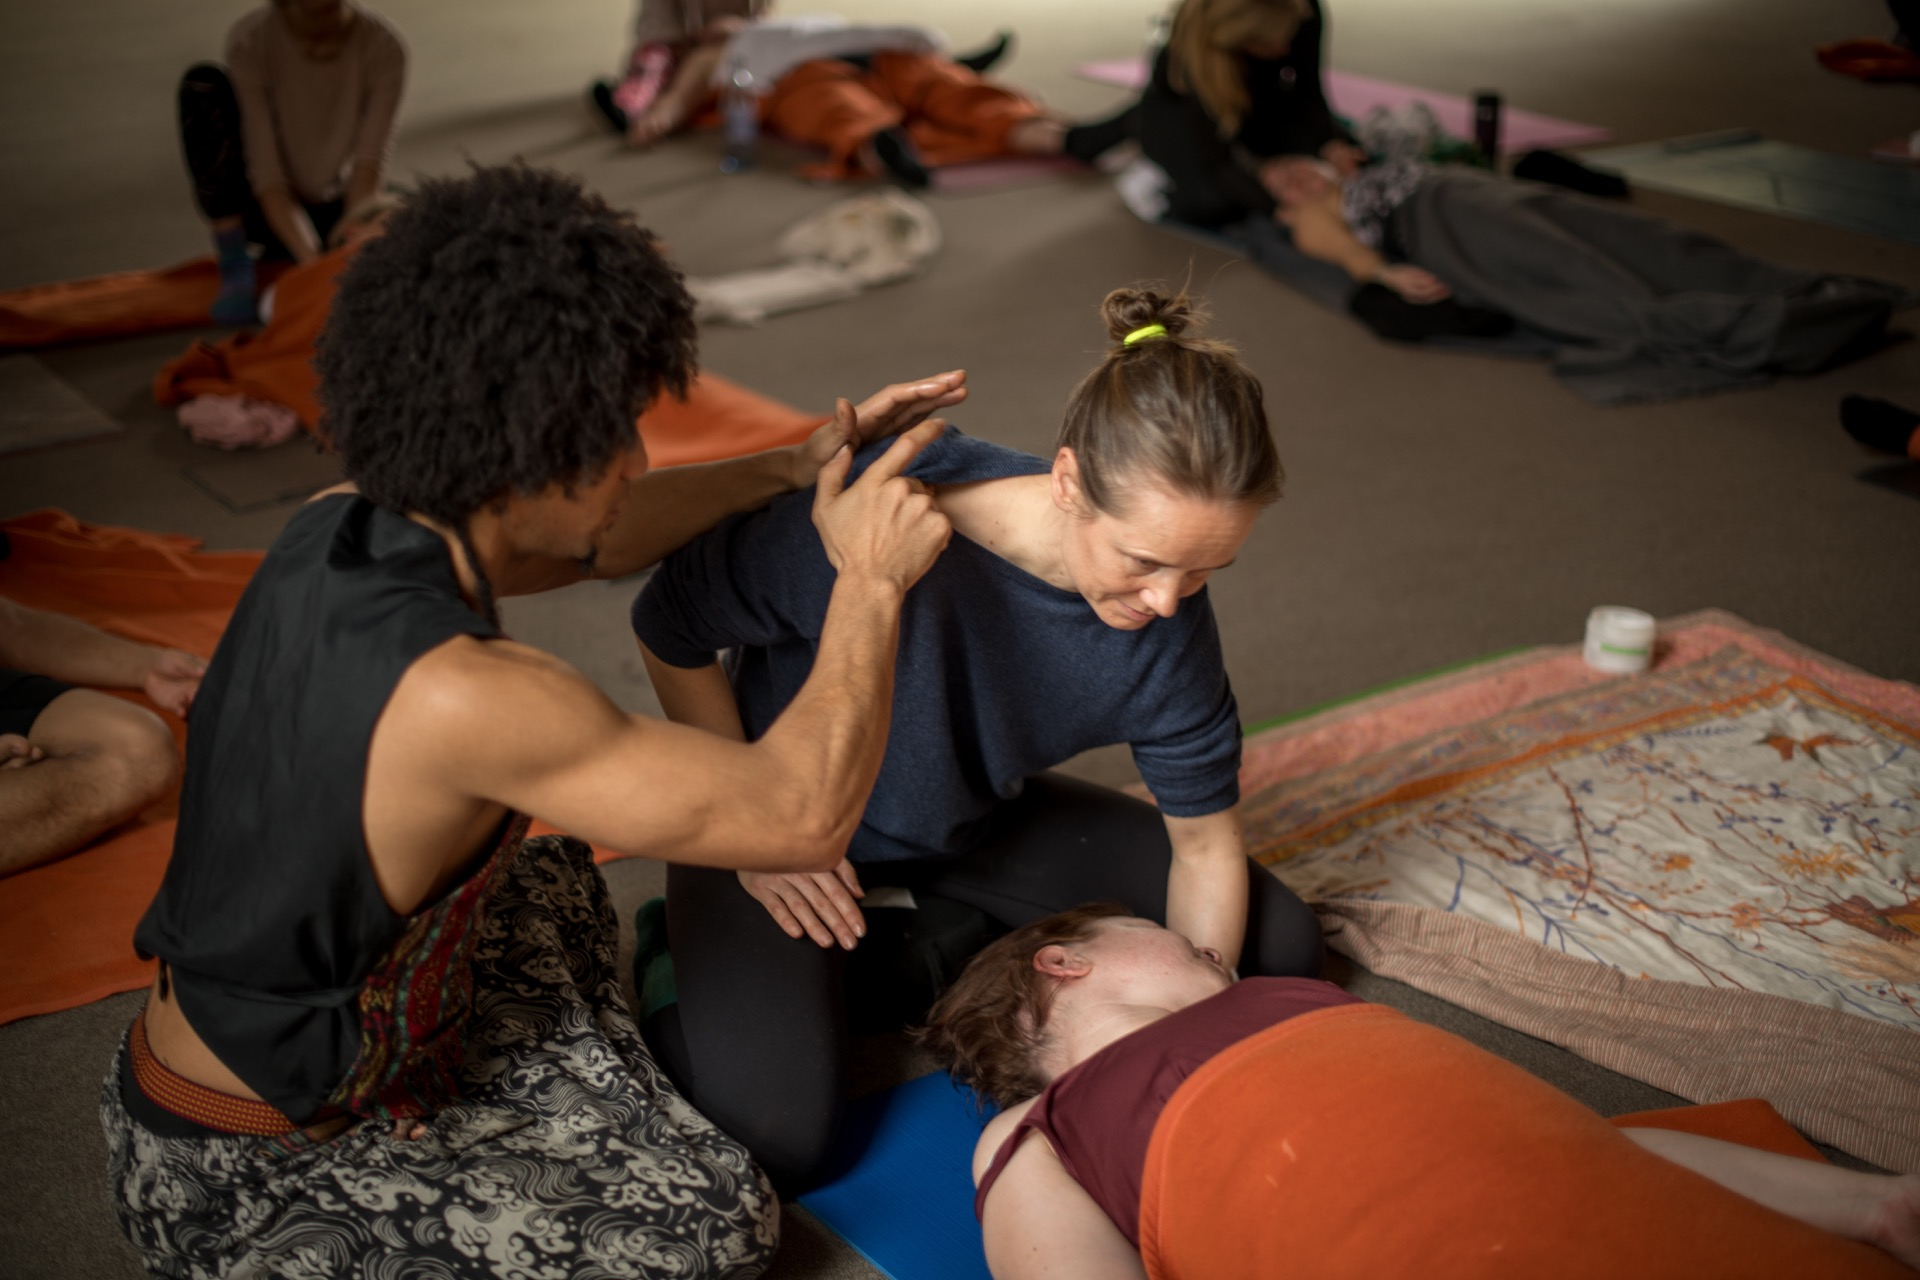 A-New-Beginning-Hie-Kim-Yoga-Retreat-Alina-Matis-Photography-088 - Hie Kim Yoga - Yoga Retreat - Yoga Workshops und Reisen